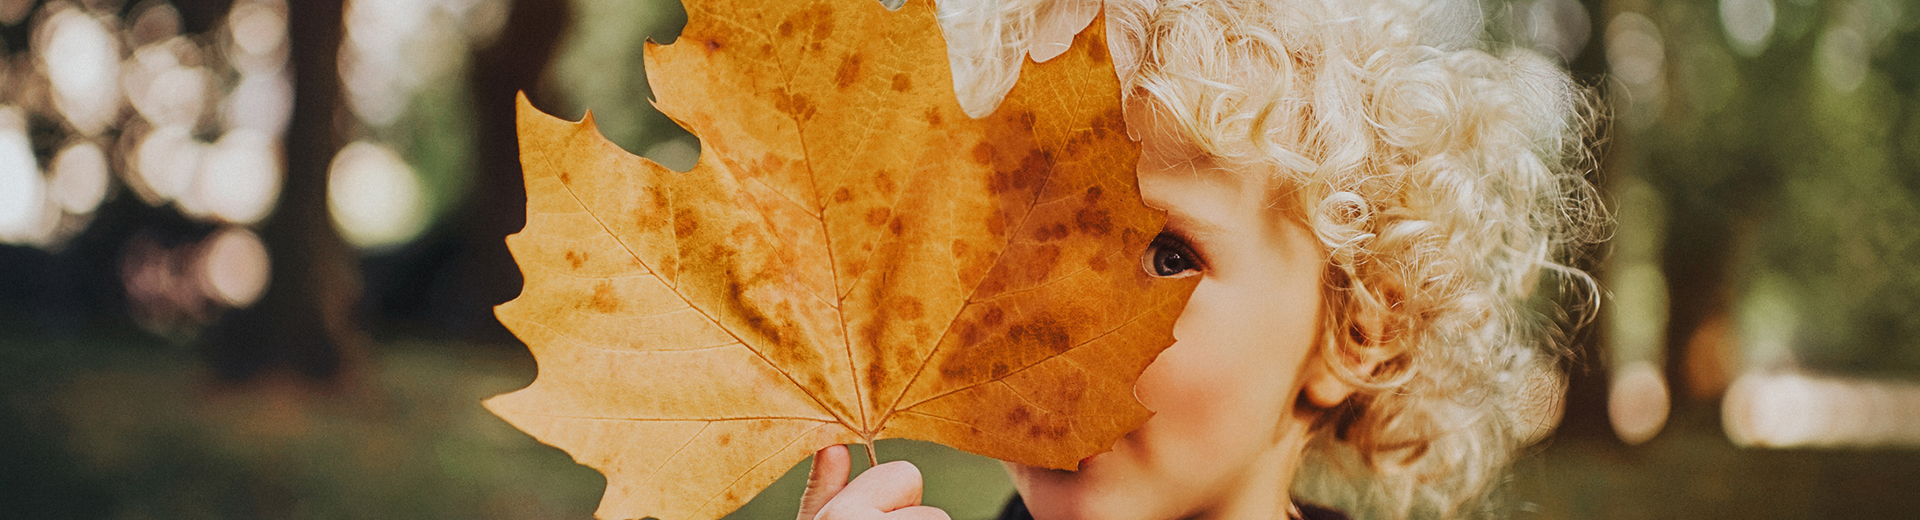 child holding autumn leaf